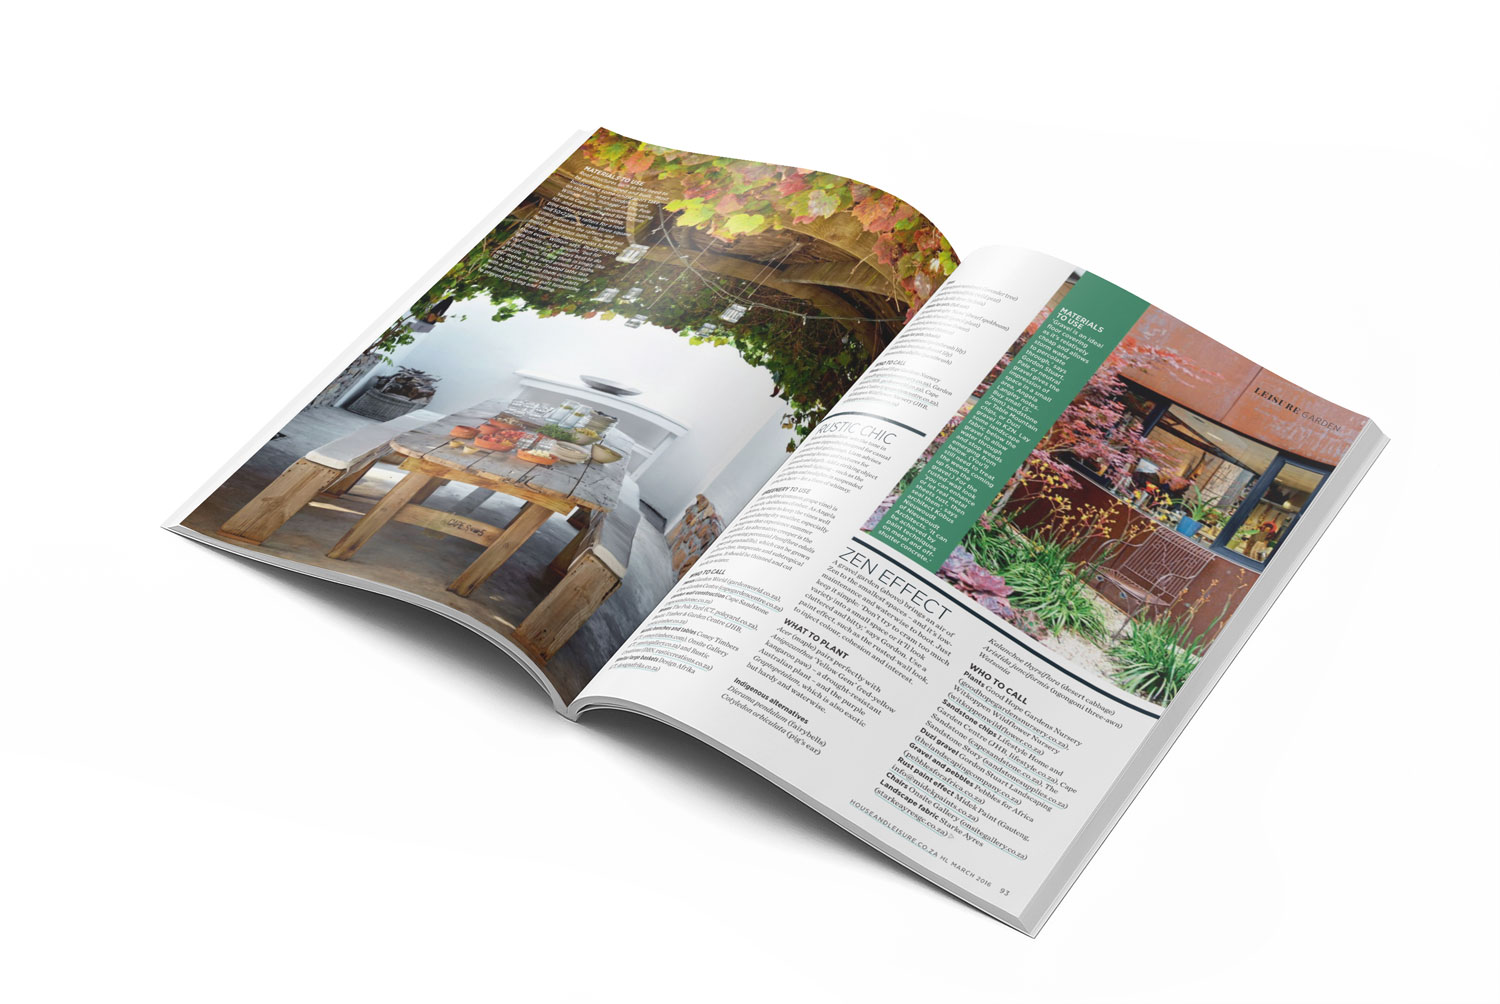 nieuwoudt-architects-house-and-leisure-march-2016-page-3